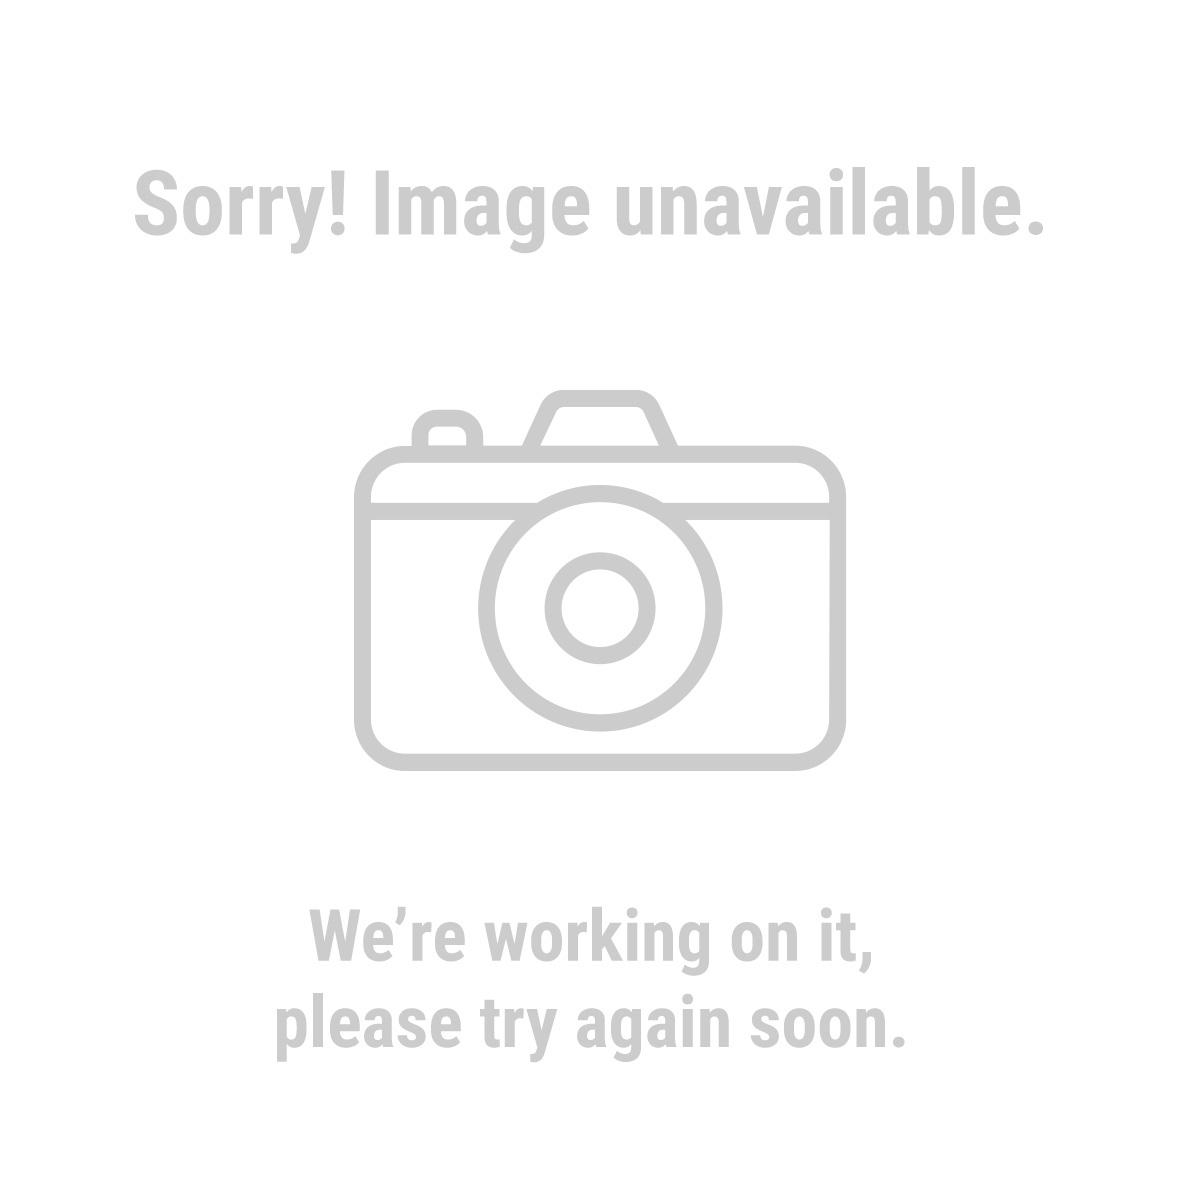 63cc, 900 Watts Max/800 Watts Rated Portable Generator